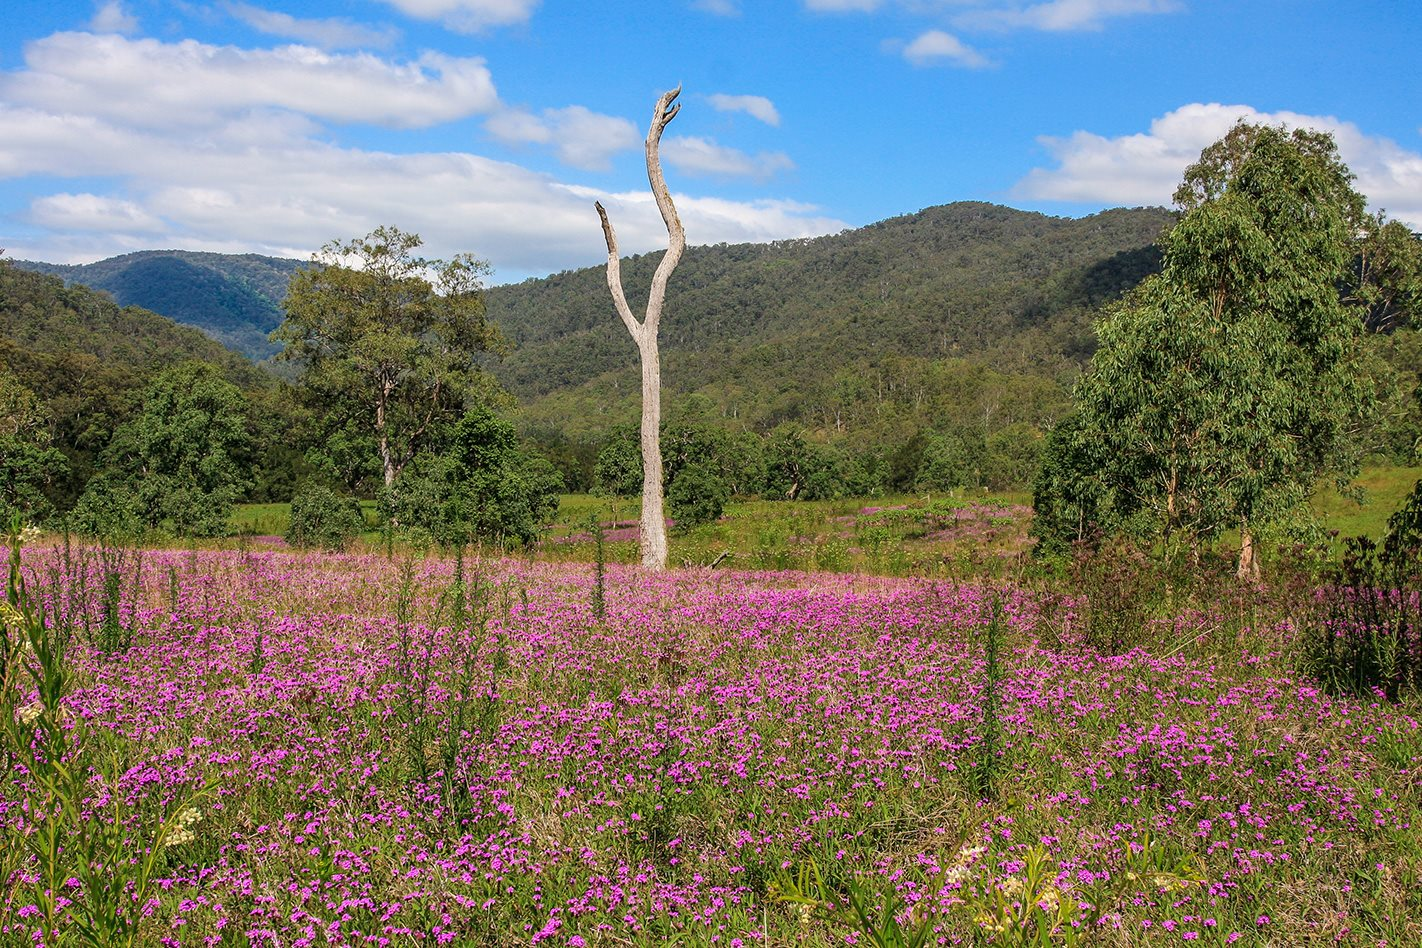 Spring time in Chaelundi National Park, NSW